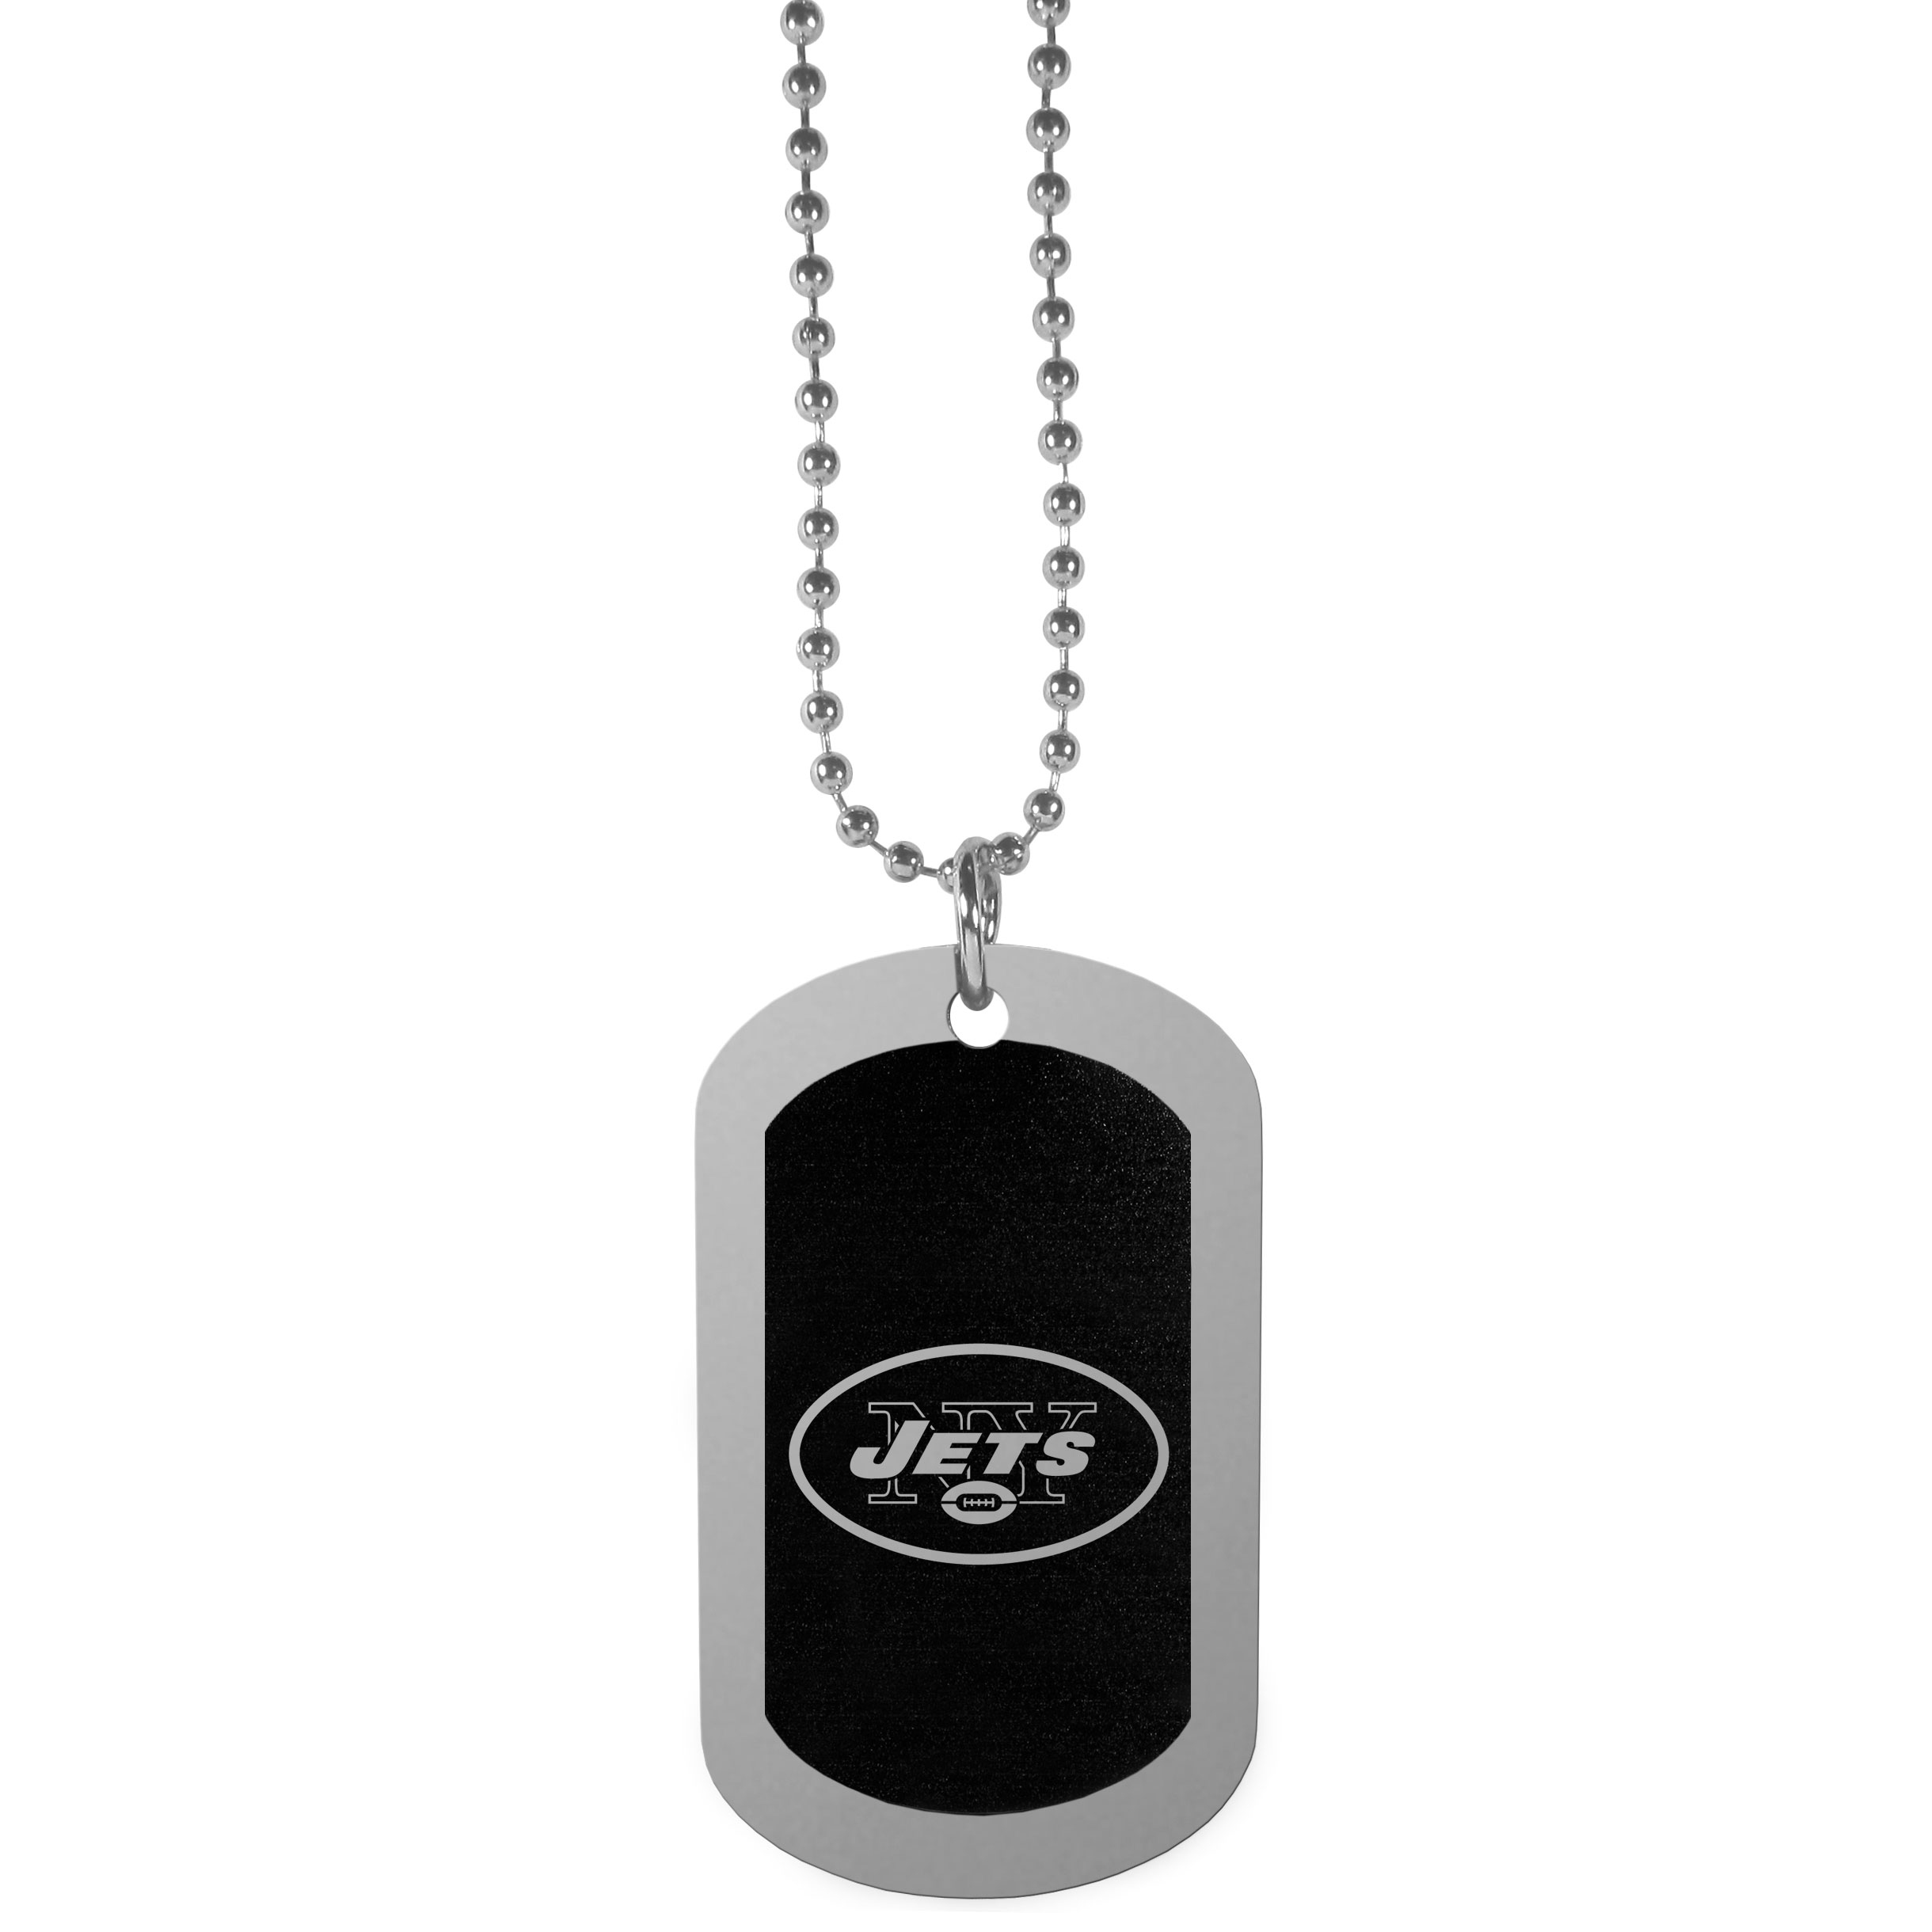 New York Jets Chrome Tag Necklace - Dog tag necklaces are a fashion statement that is here to stay. The sporty version of the classic tag features a black printed over a high polish tag to create a bold and sporty look. The tag comes on a 26 inch ball chain with a ball and joint clasp. Any New York Jets would be proud to wear this attractive fashion accessory.